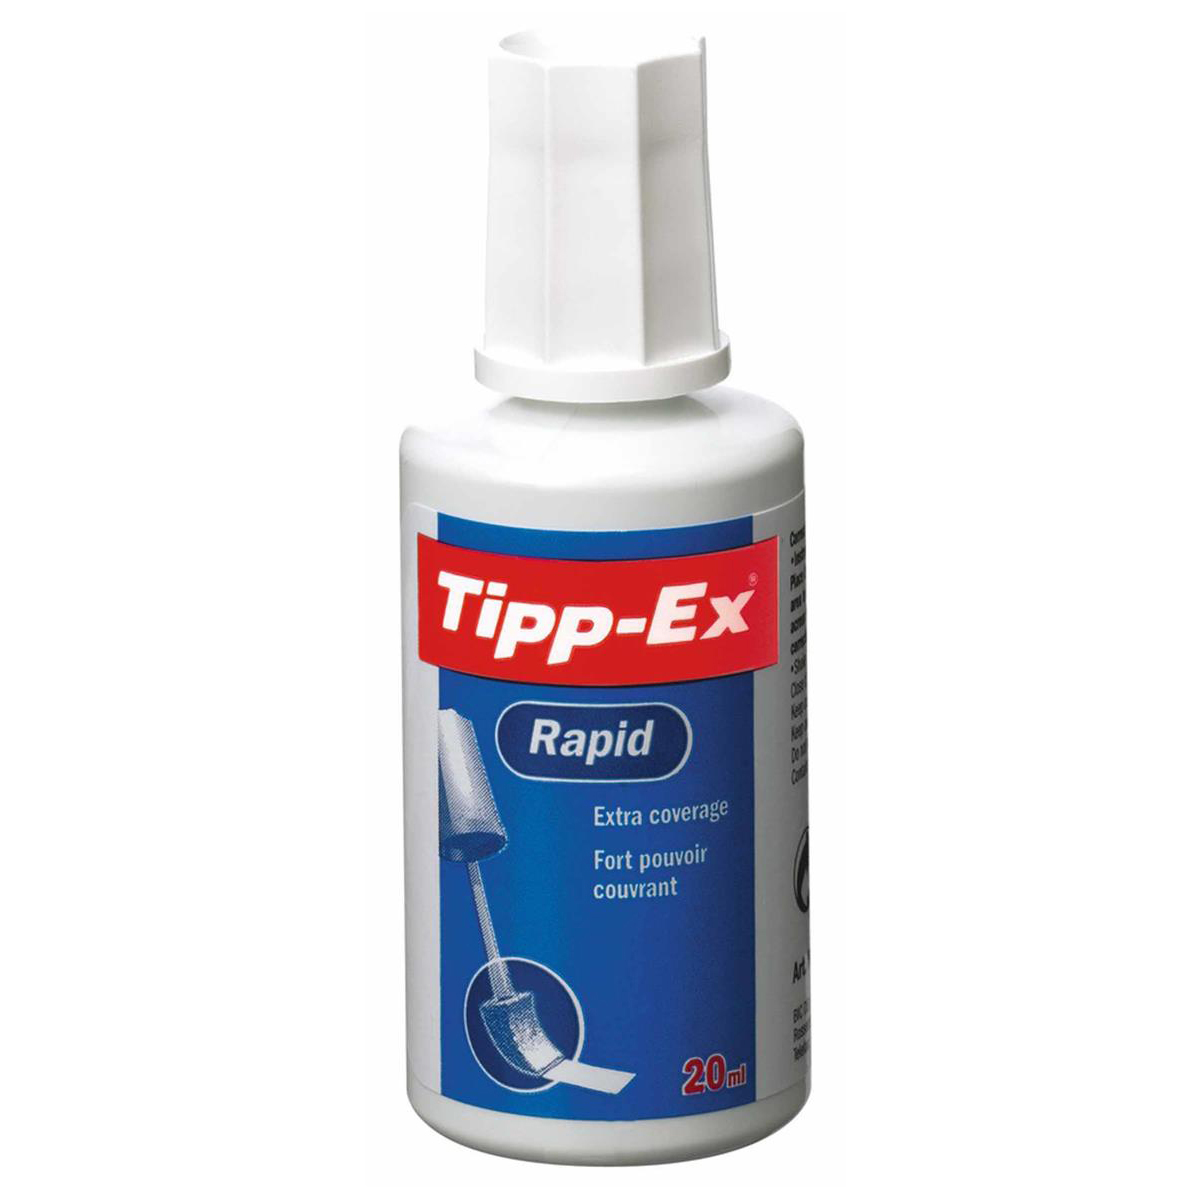 Tipp-Ex Rapid Correction Fluid Fast-drying with Foam Applicator 20ml White Ref 885992 Pack 10